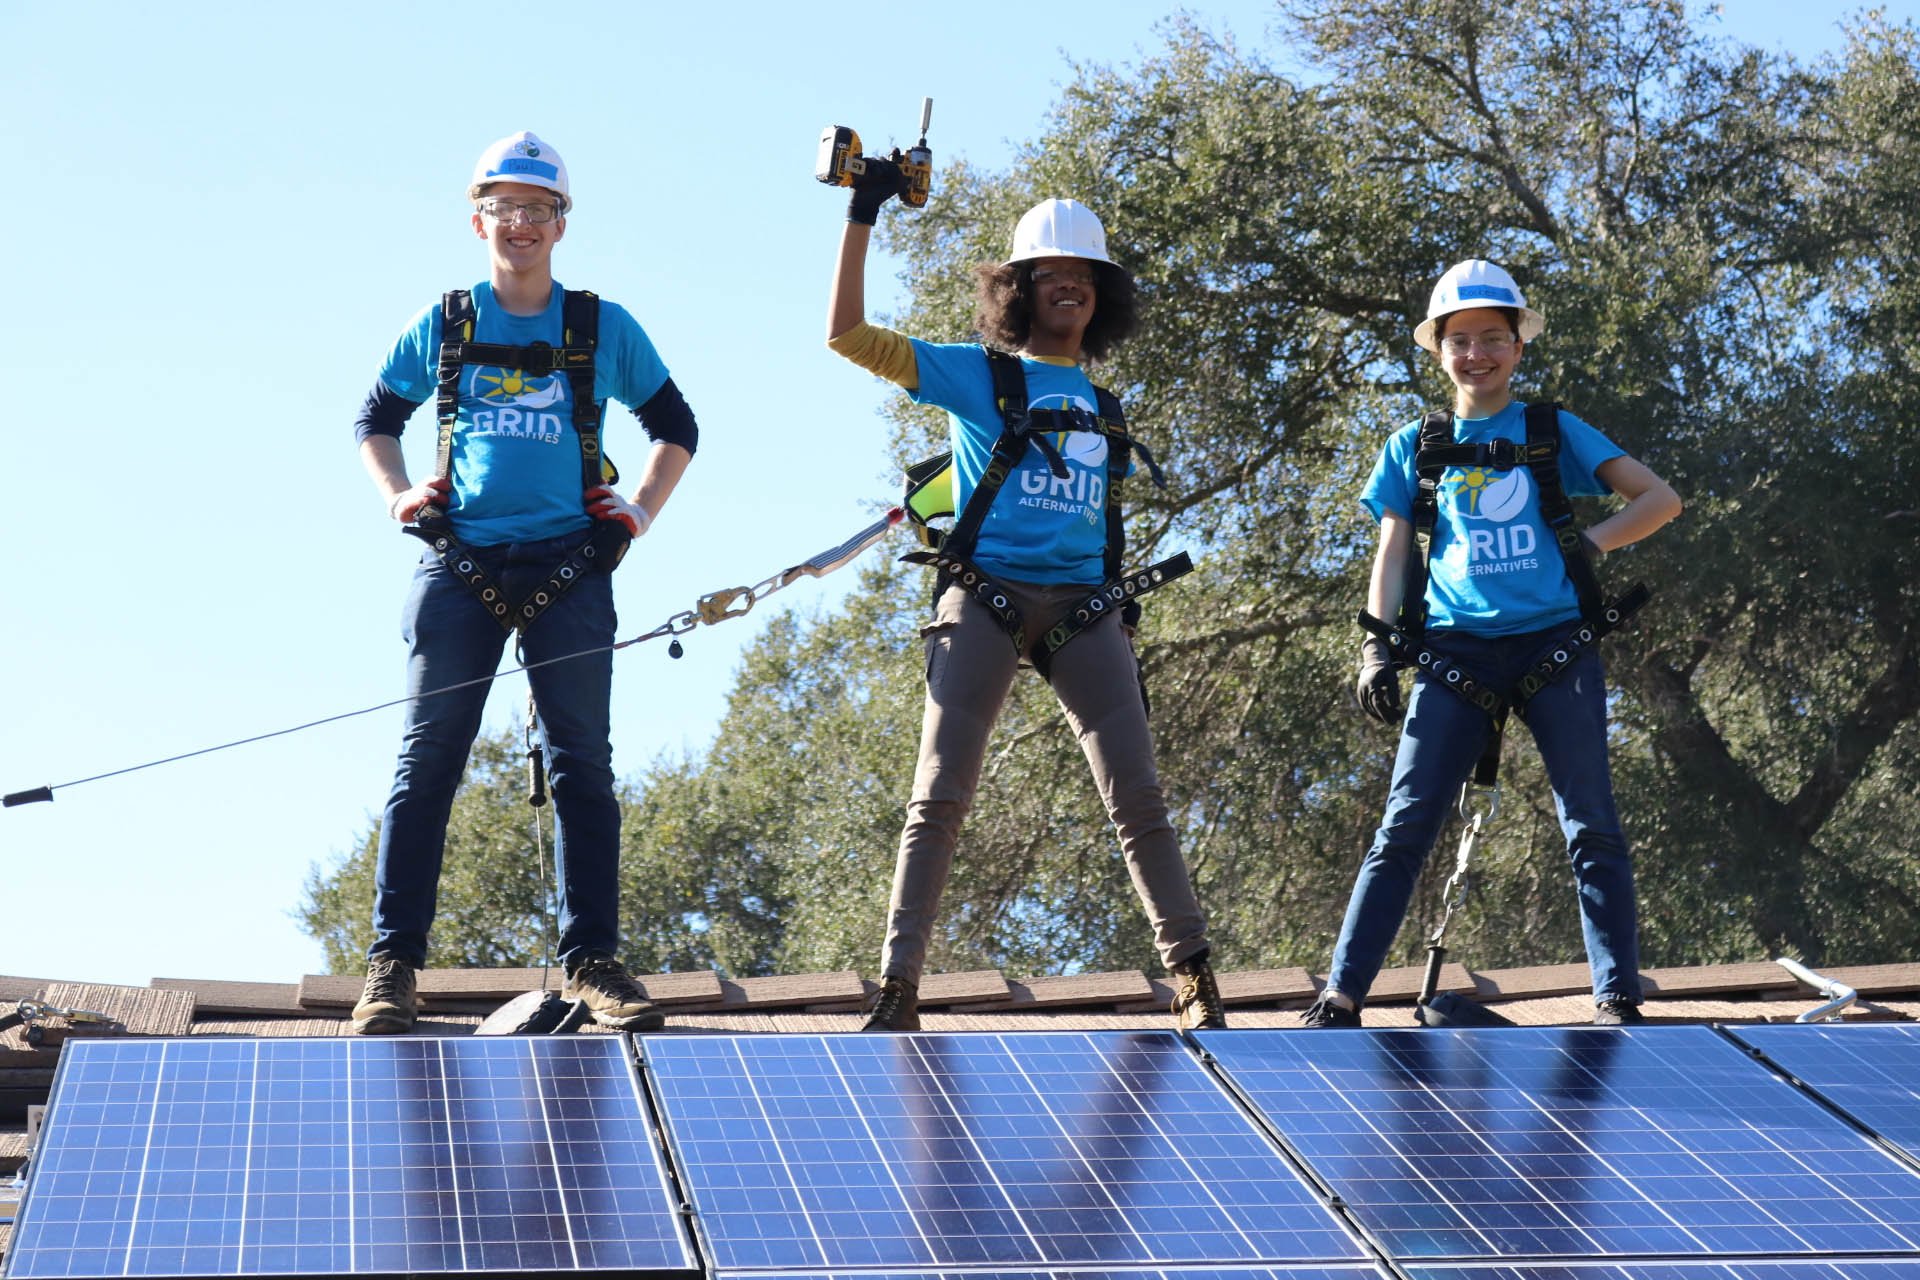 GRID Solar students